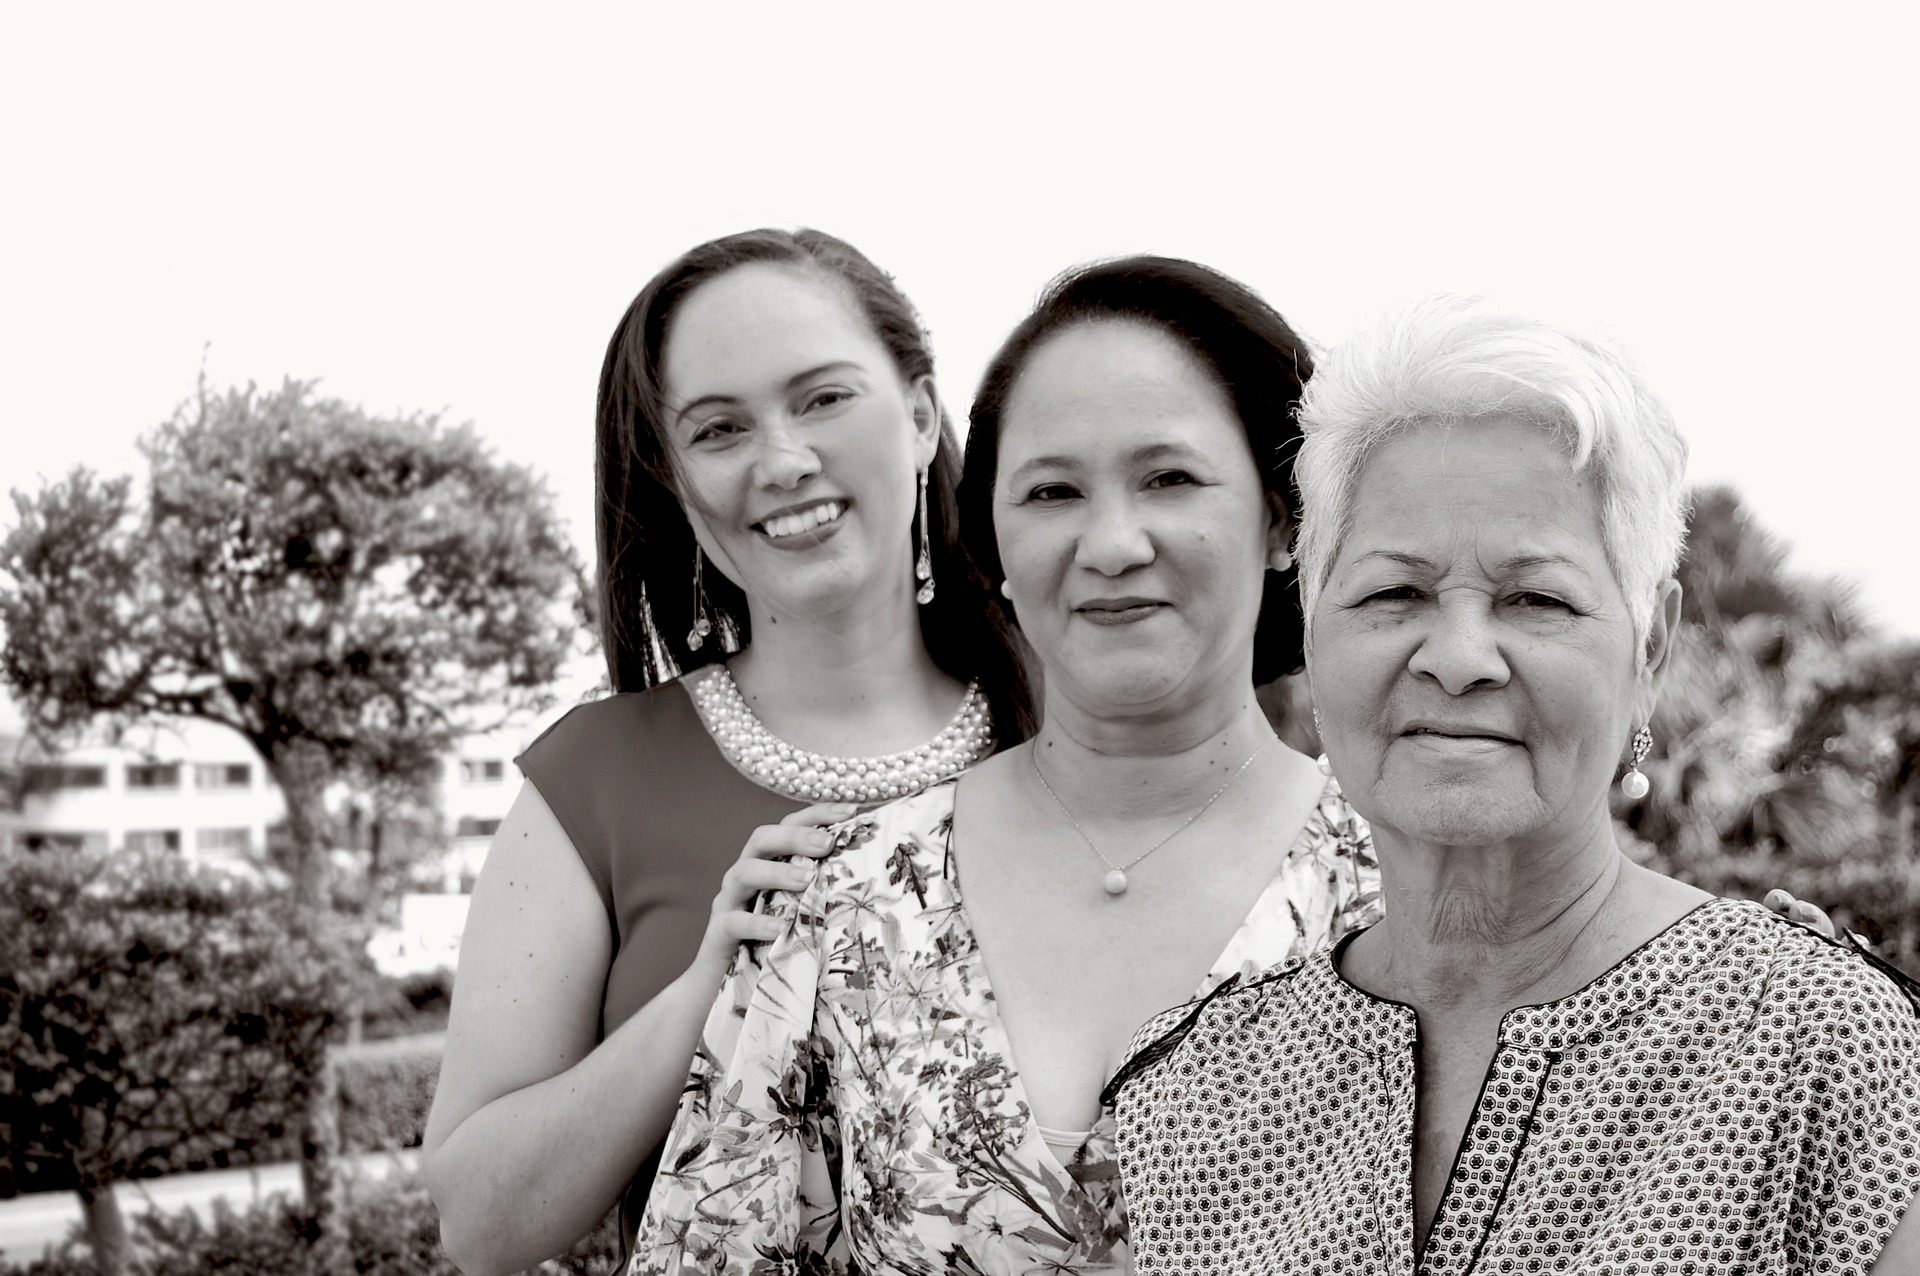 Black and white photograph of three generations of women of Asian or Latin American descent.